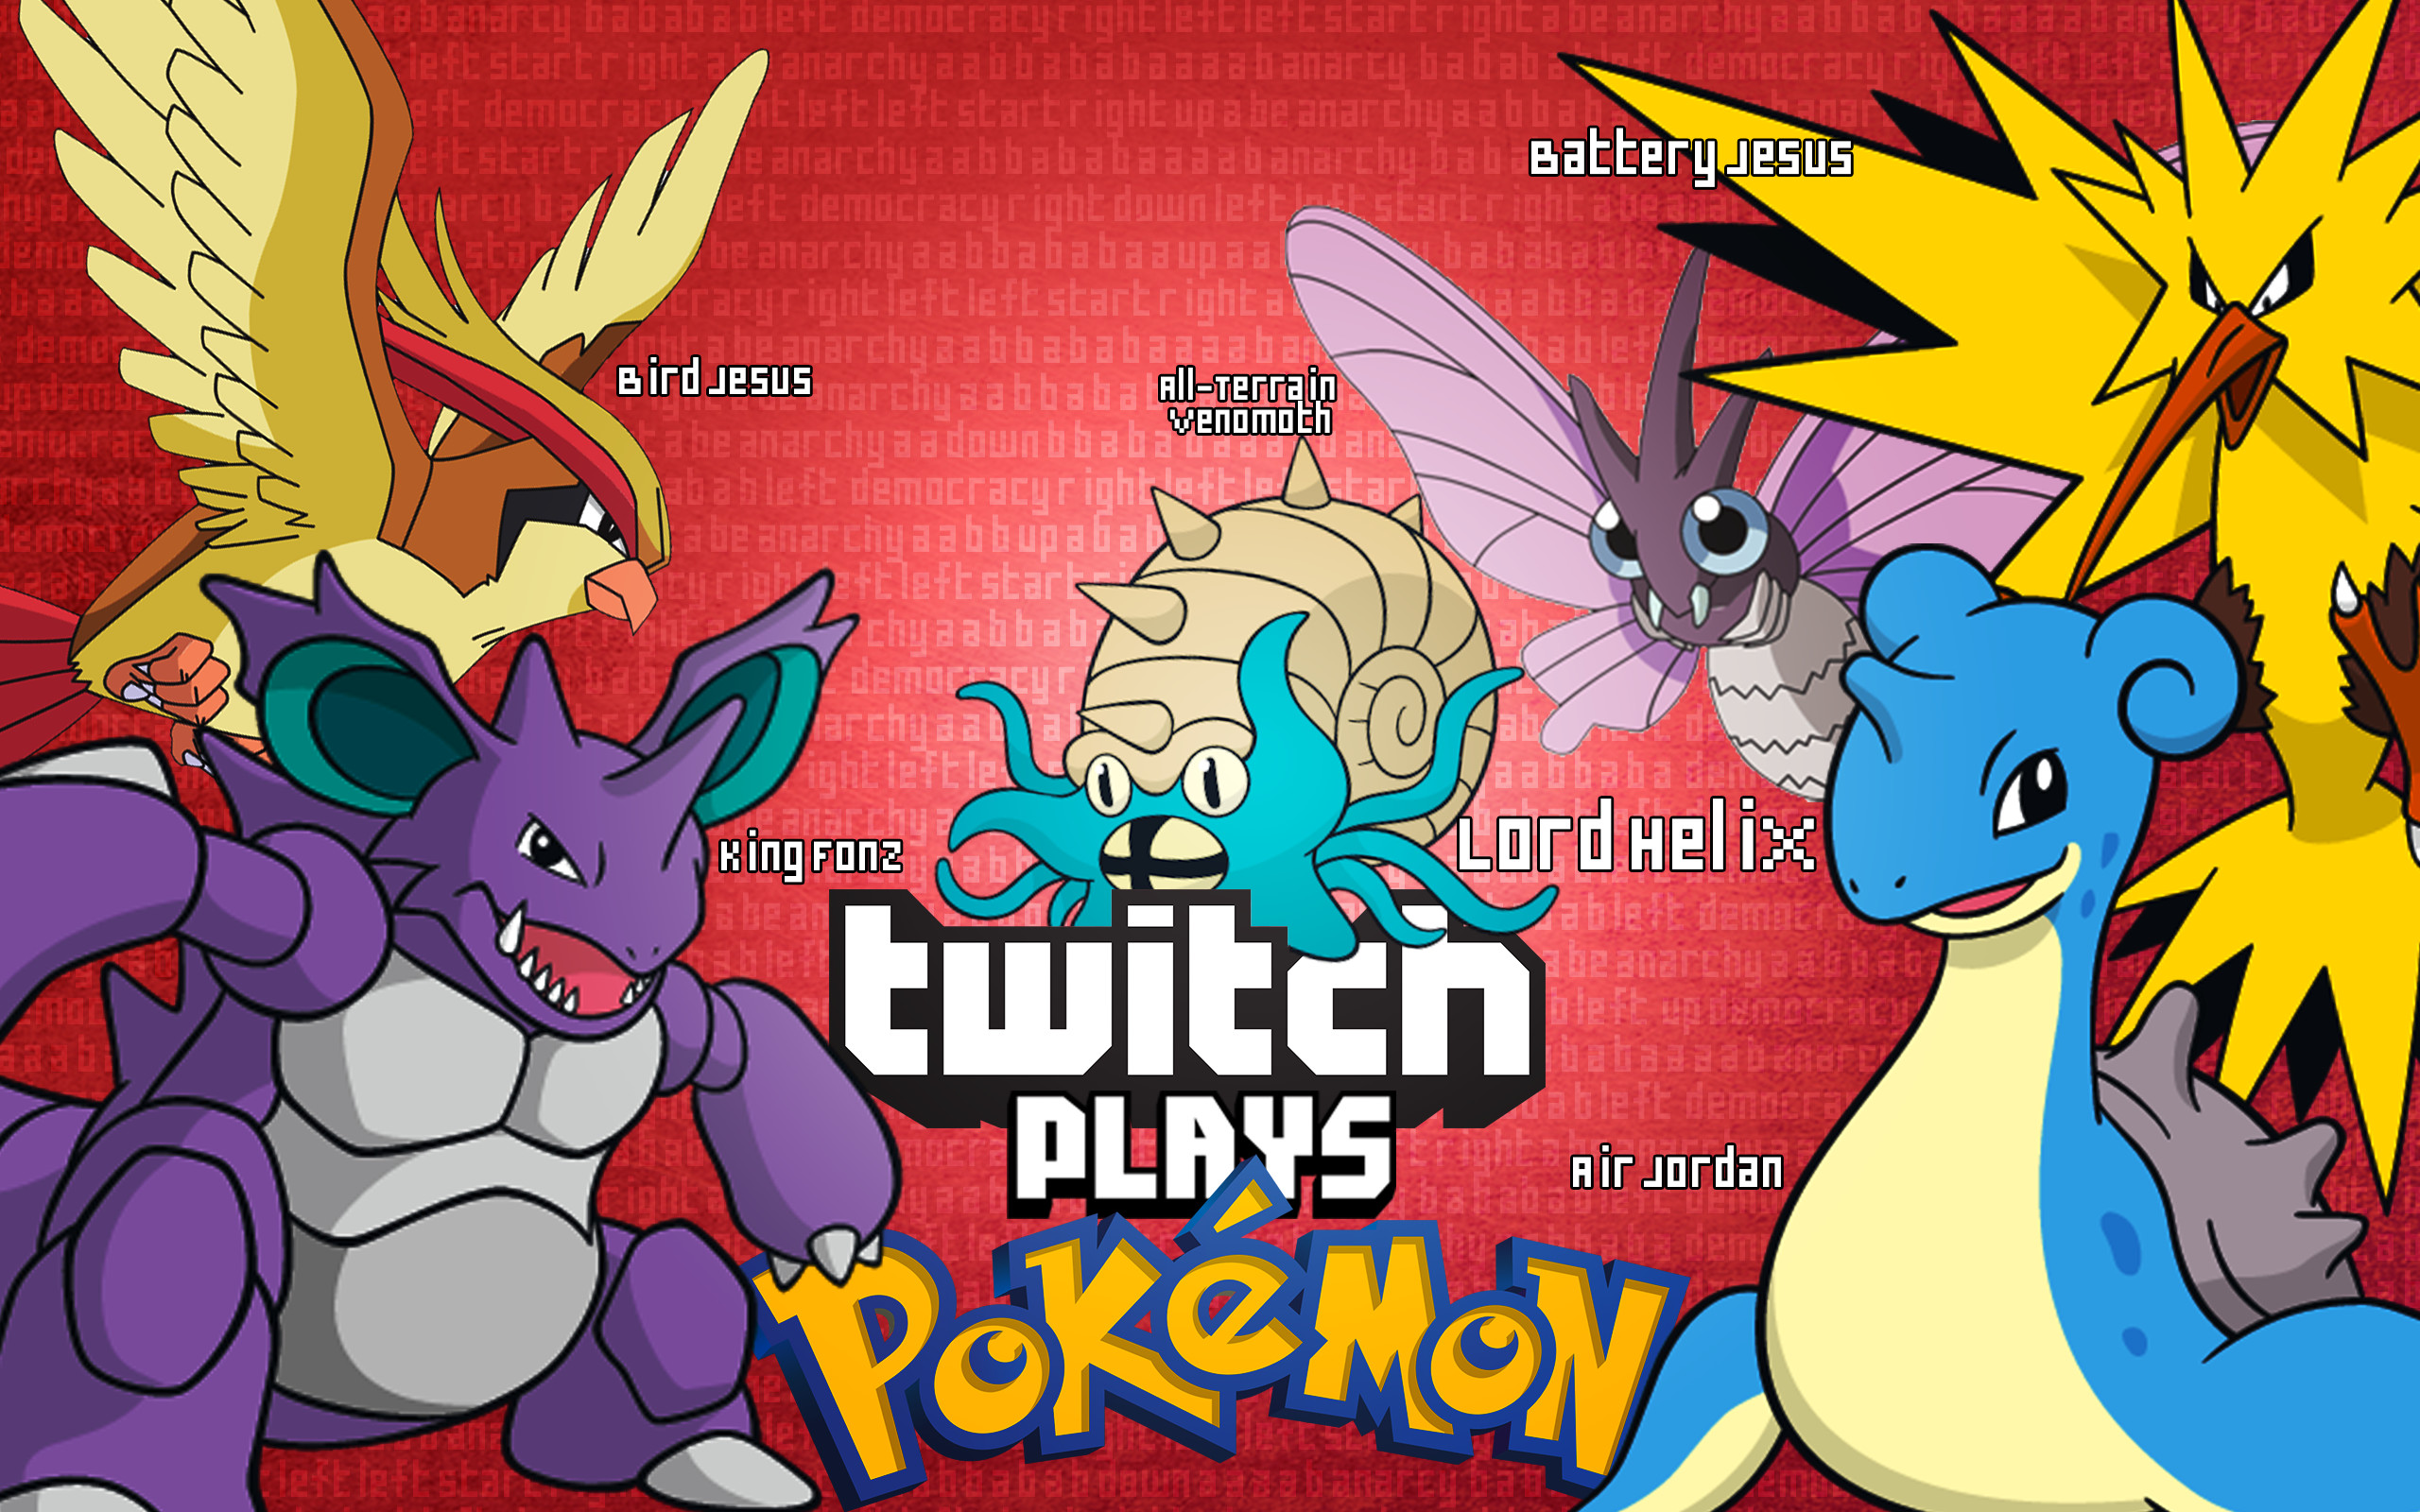 Twitch Plays Pokemon Wallpapers